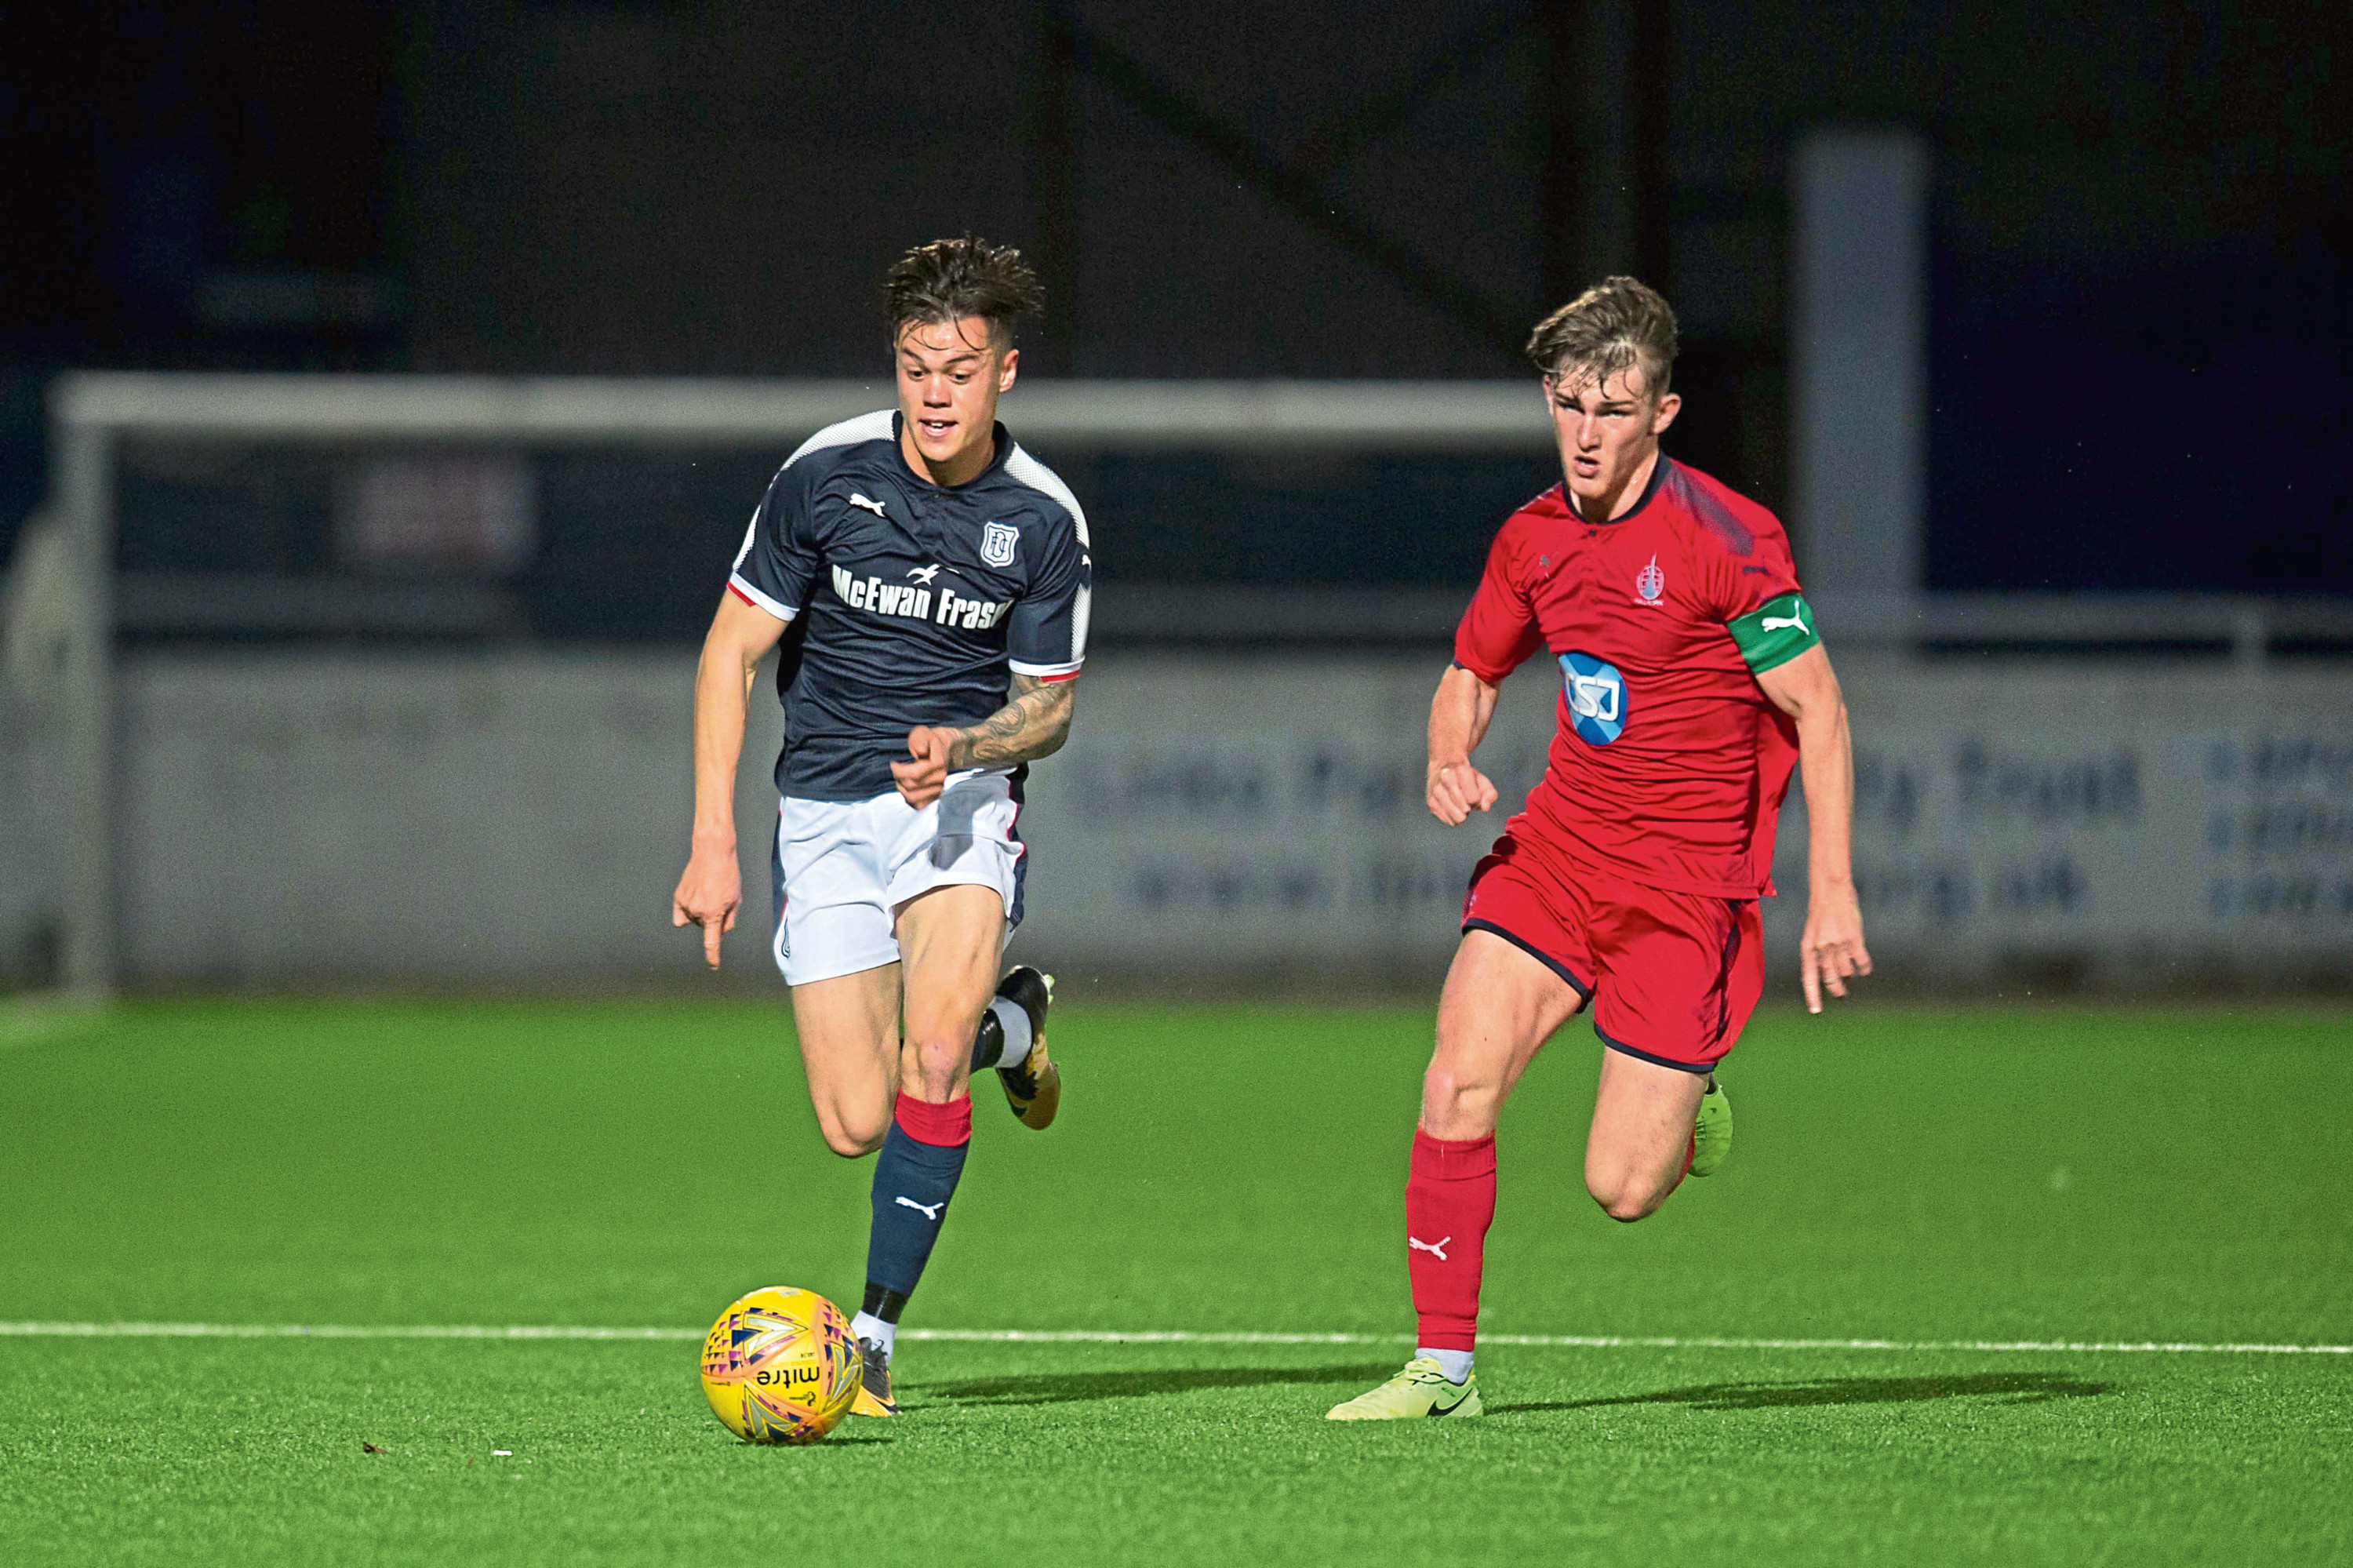 Jesse Curran recently signed a new one-year contract at Dundee.